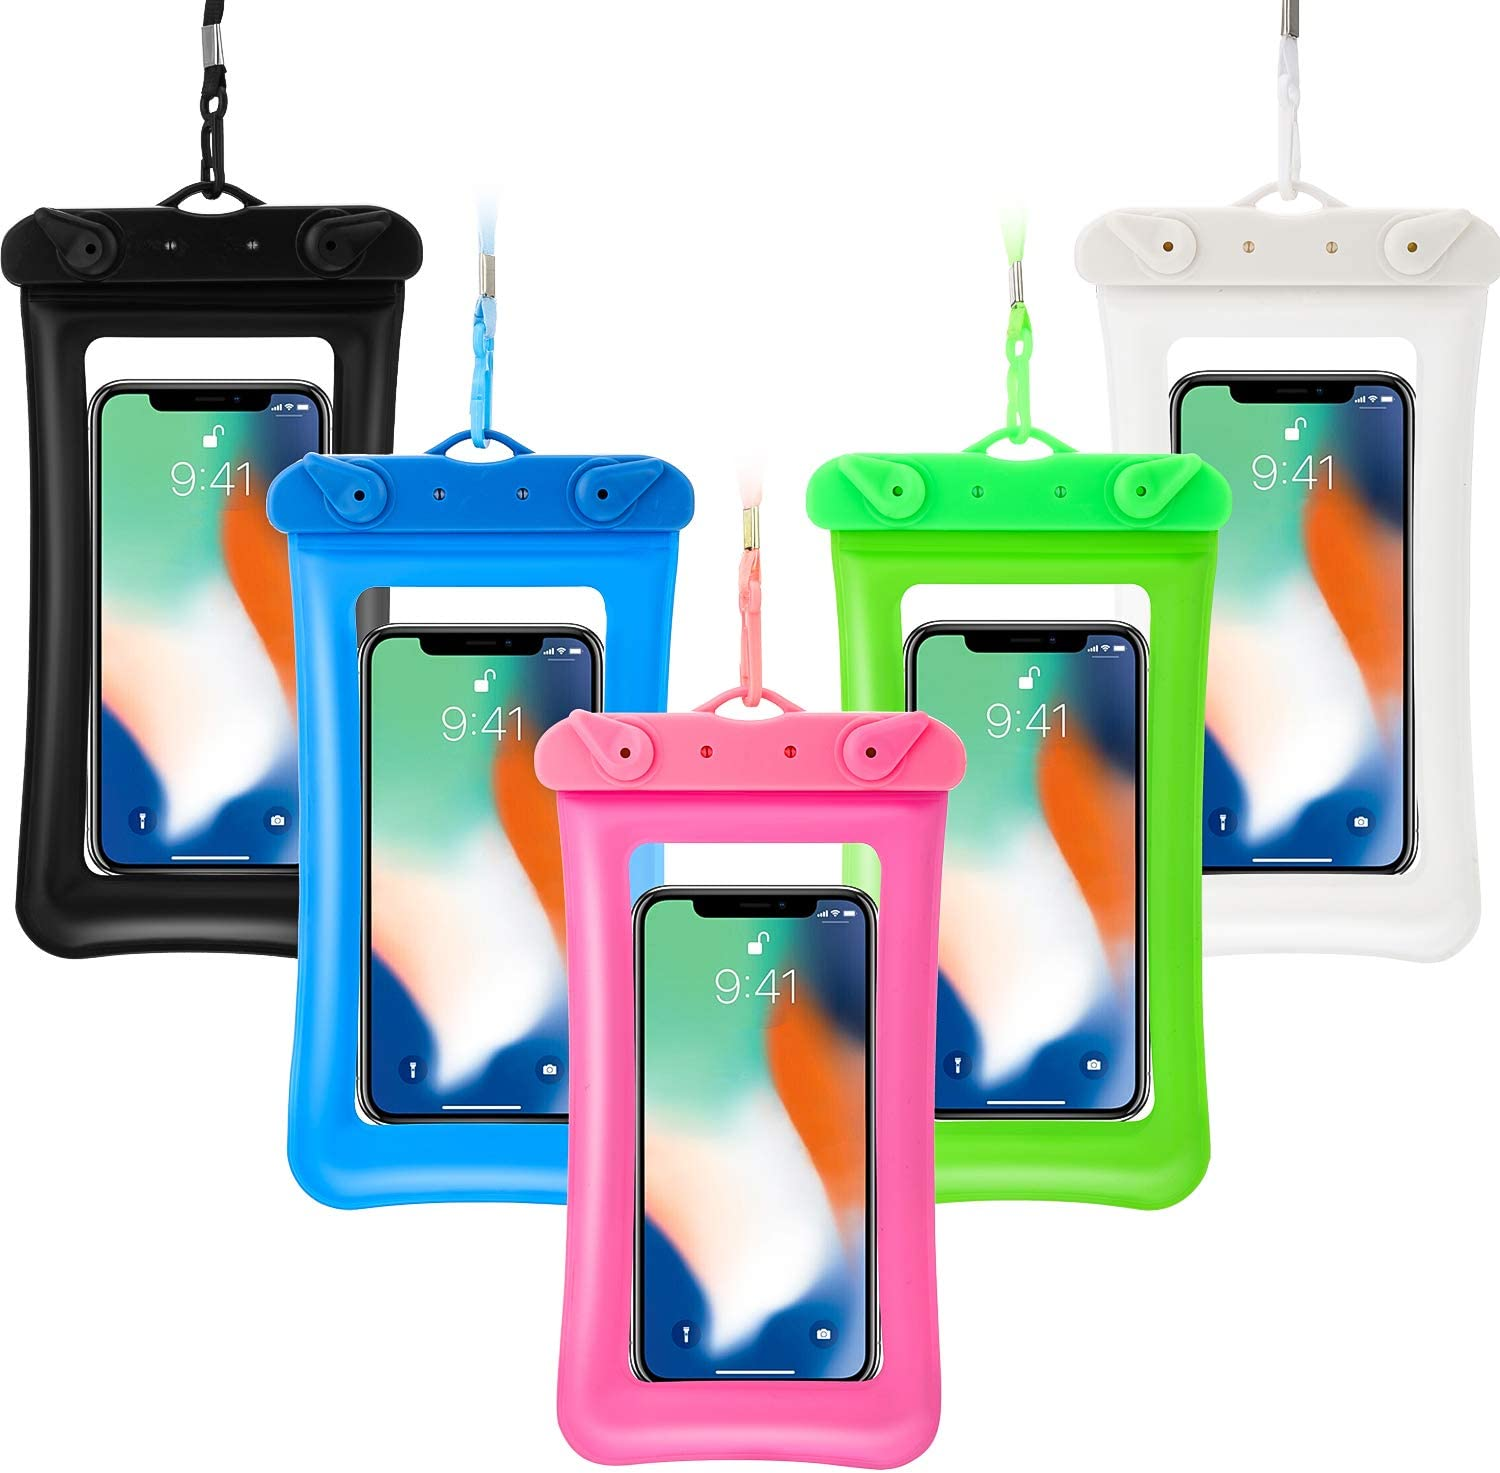 5 Pieces Floating Waterproof Phone Pouch Floatable Waterproof Case Universal Cellphone Dry Bag with Lanyard Beach Underwater Pouch for Smartphone up to 6.5 Inch (Green, Rose Red, Blue, Black, White)